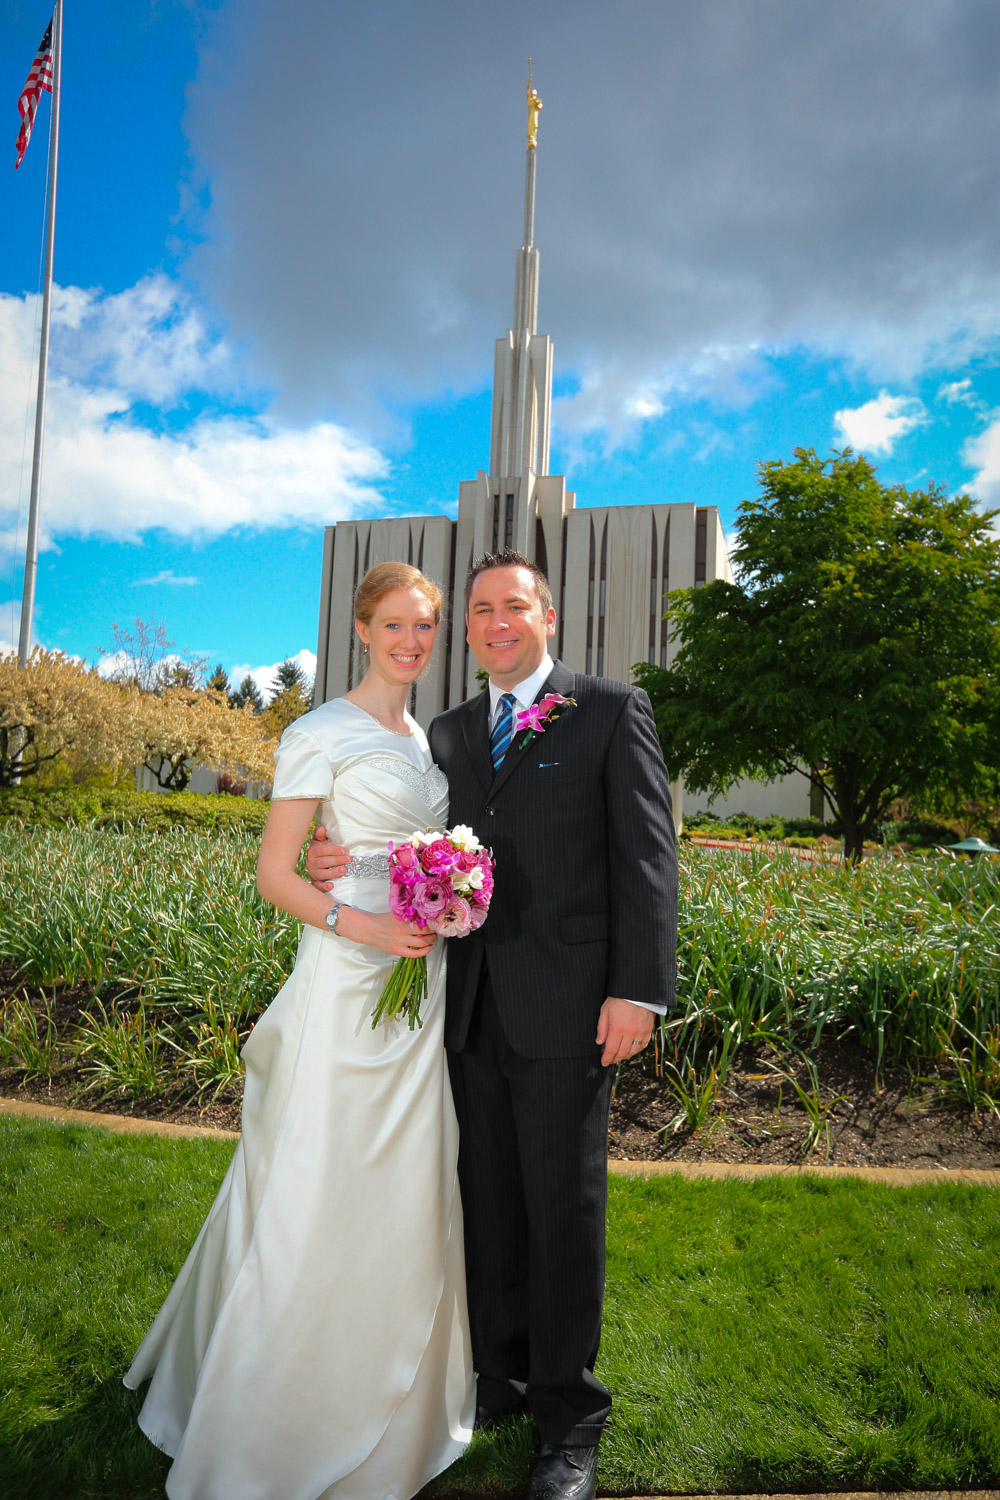 Wedding Photos LDS Temple Bellevue Washington03.jpg